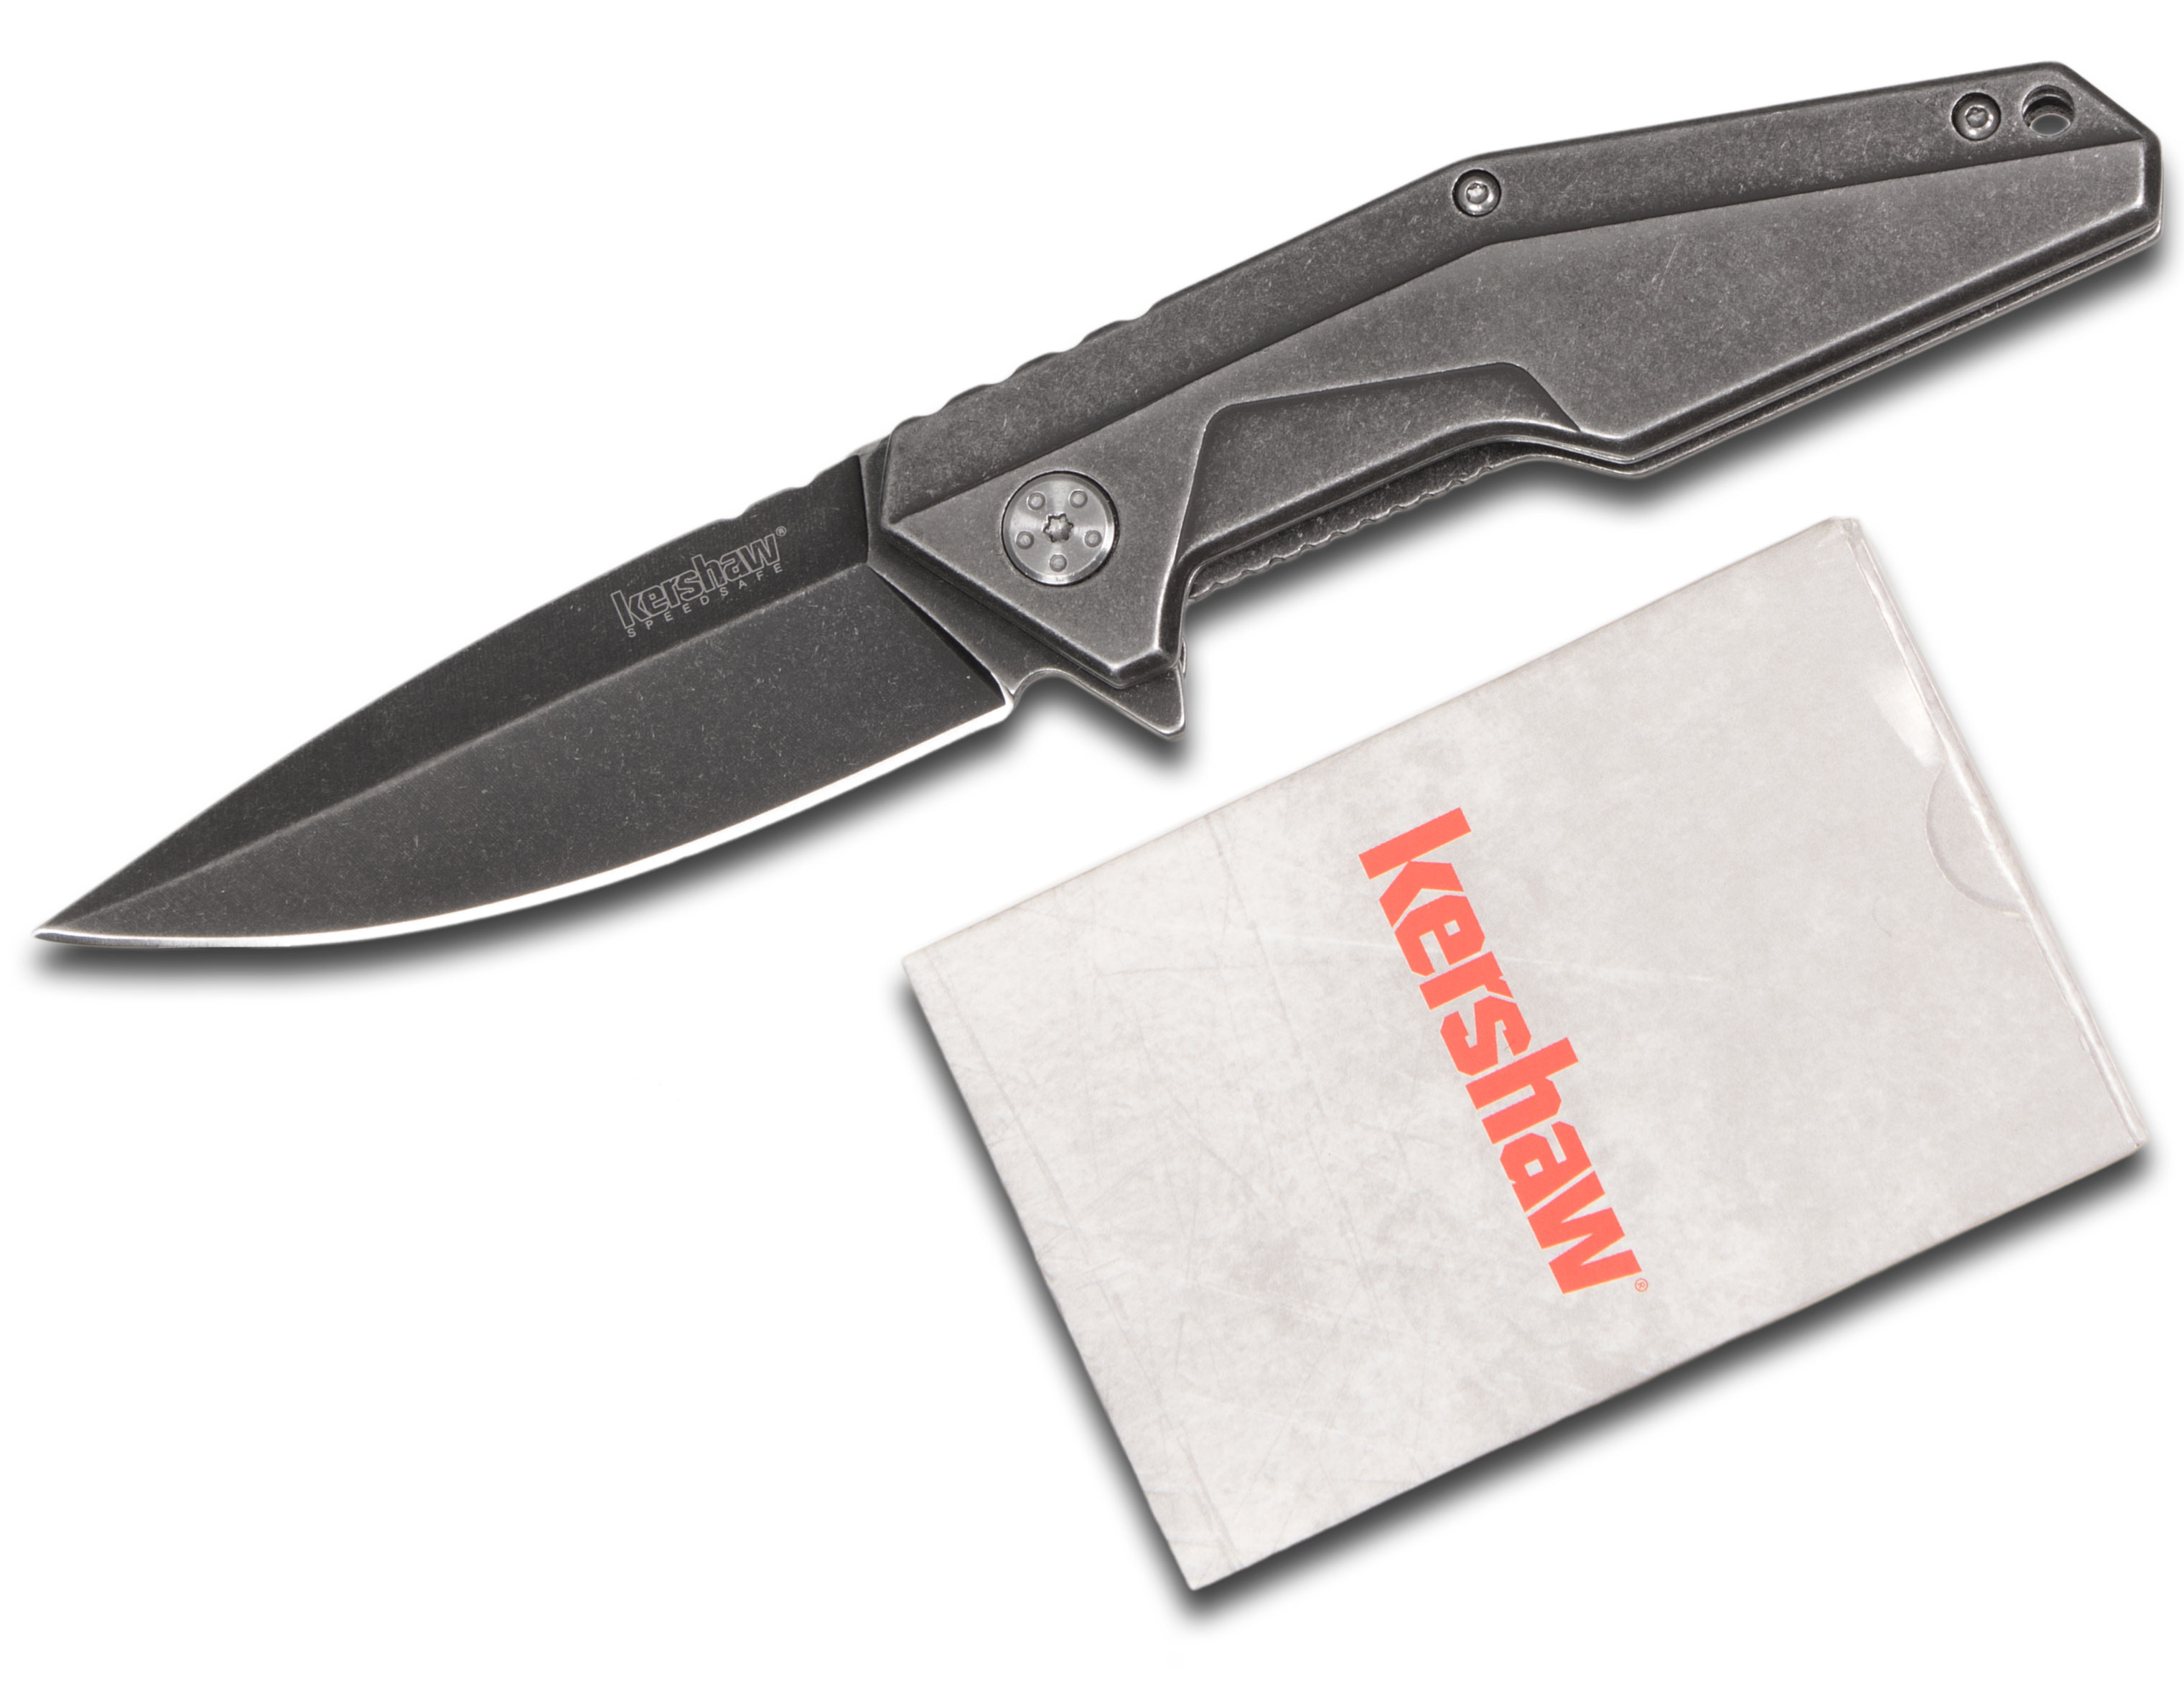 Kershaw 1318KITX Starter Series Pack, Assisted Opening Blackwash Flipper Knife and Playing Cards